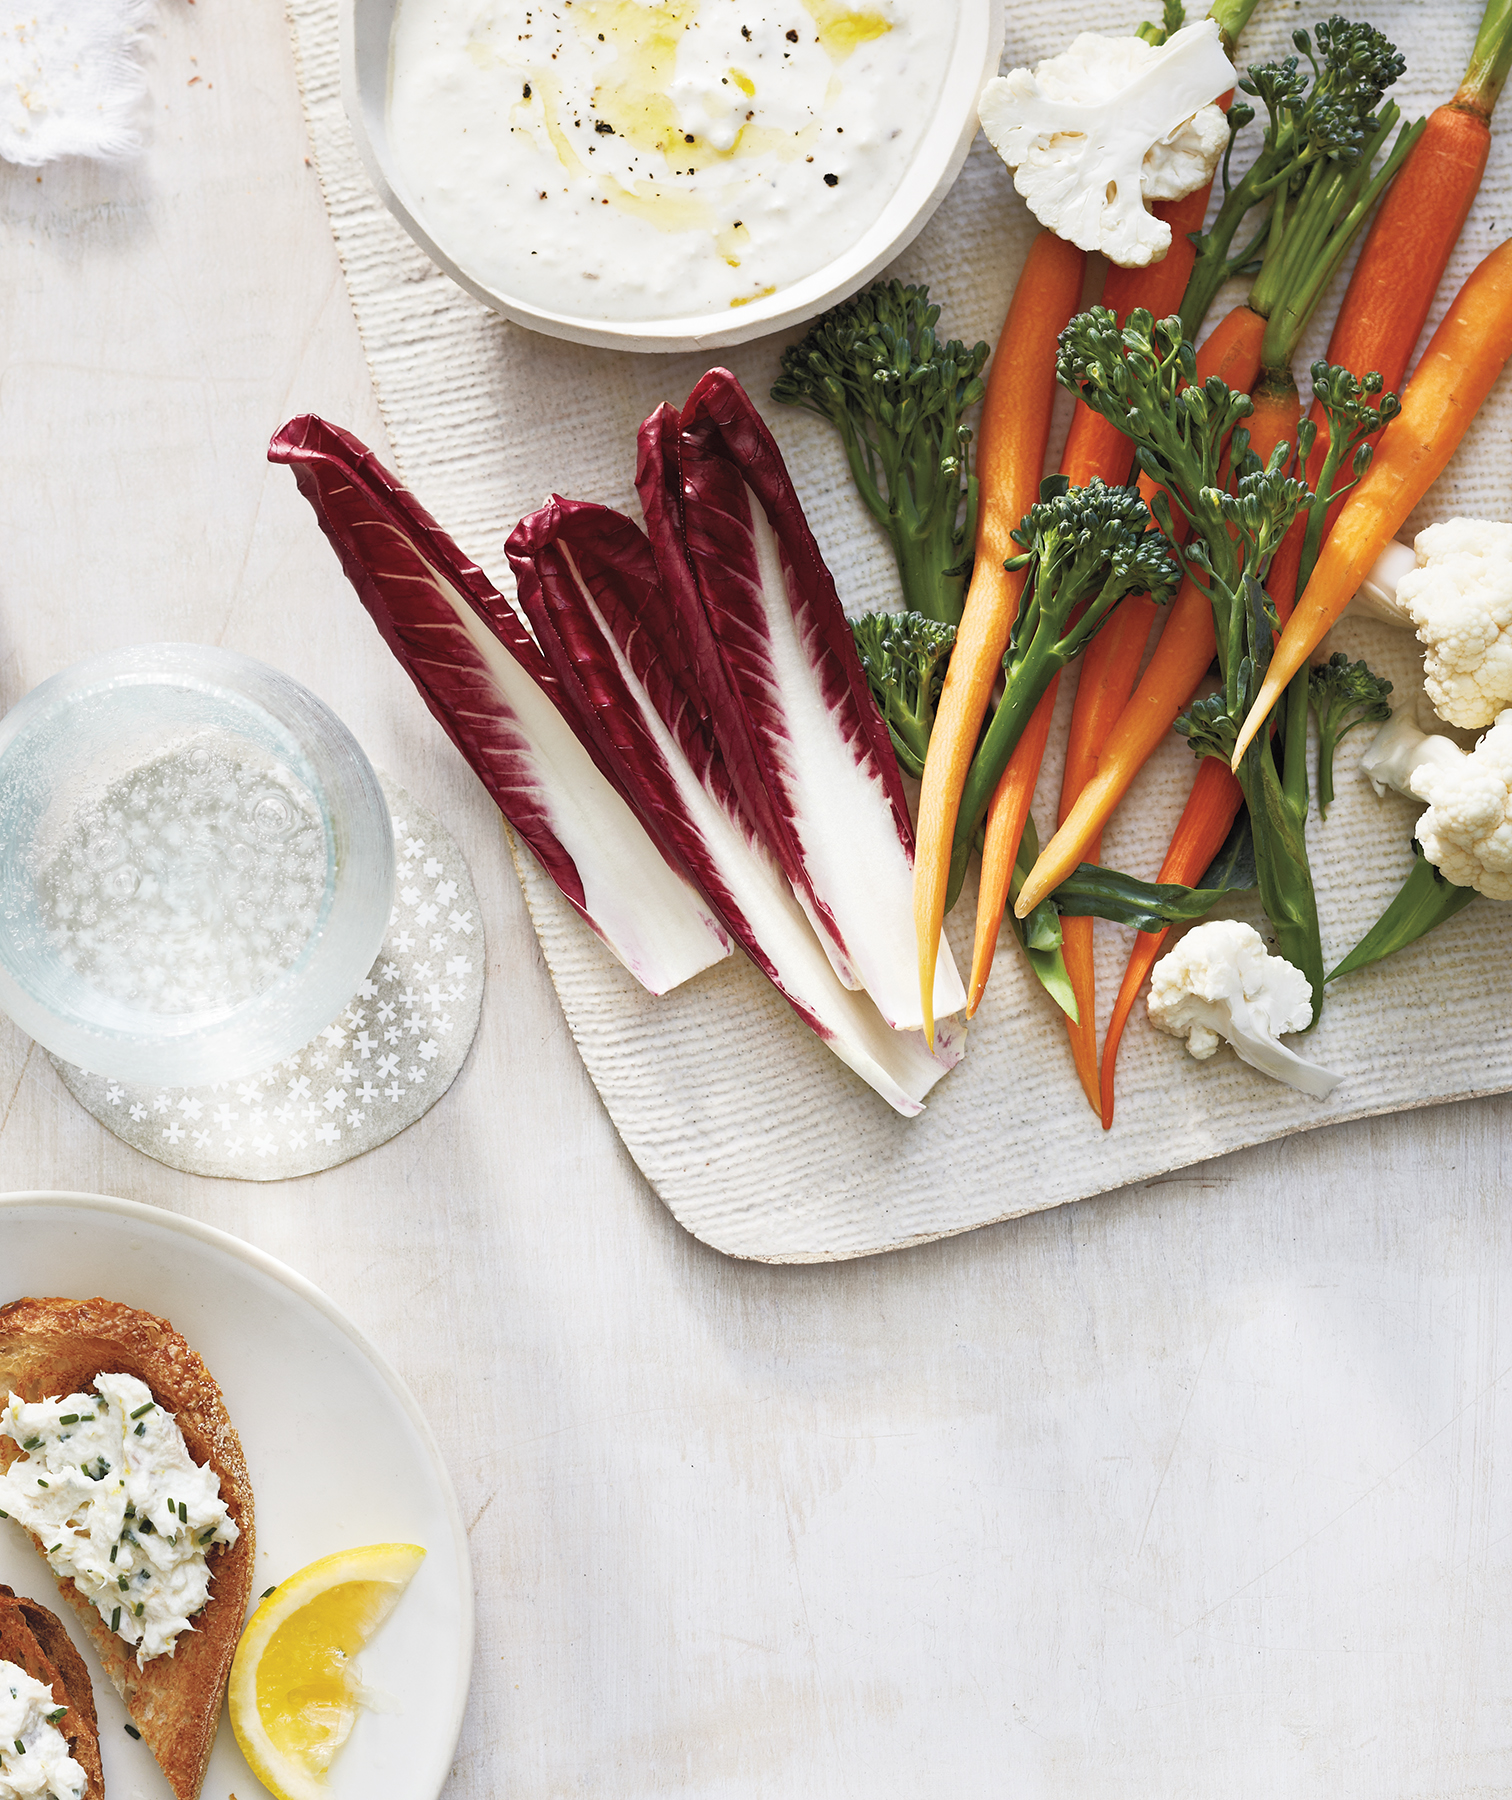 Creamy Feta and Cumin Dip With Winter Crudités